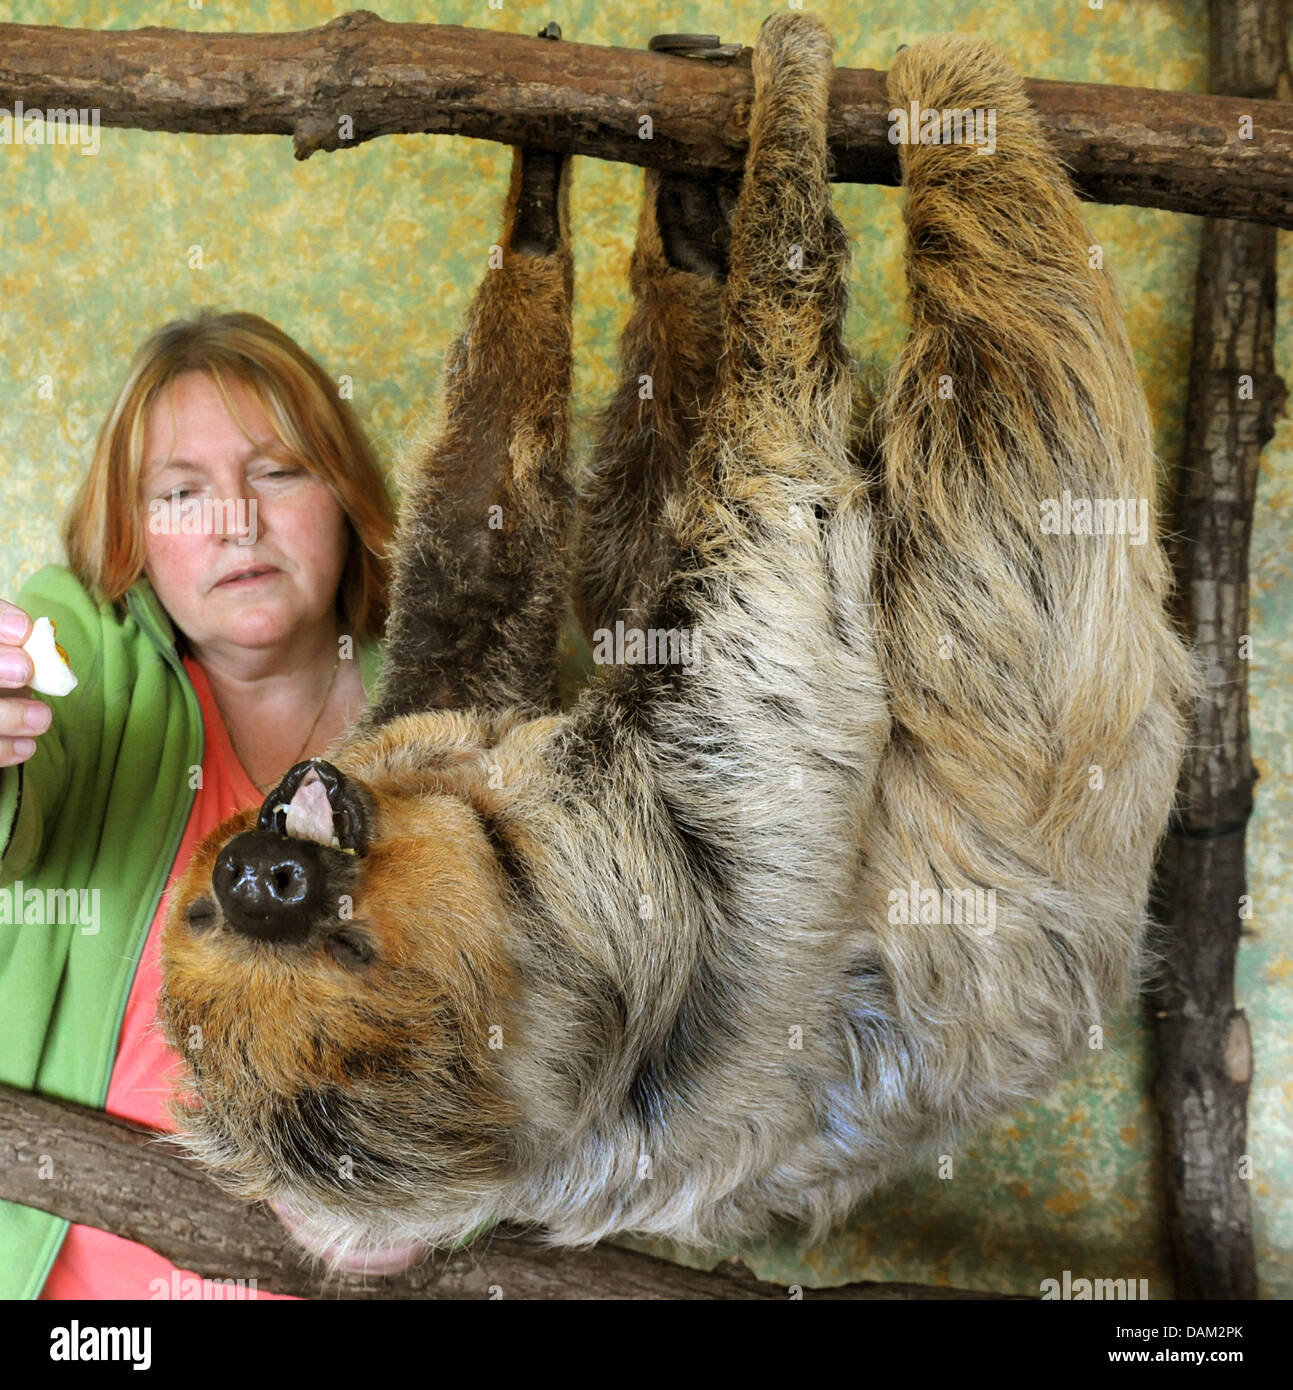 Slosh Paula is pictured during feeding with biologist Jutty Hoyer at the zoo in Halle/Saale, Germany, 17 May 2011. - Stock Image